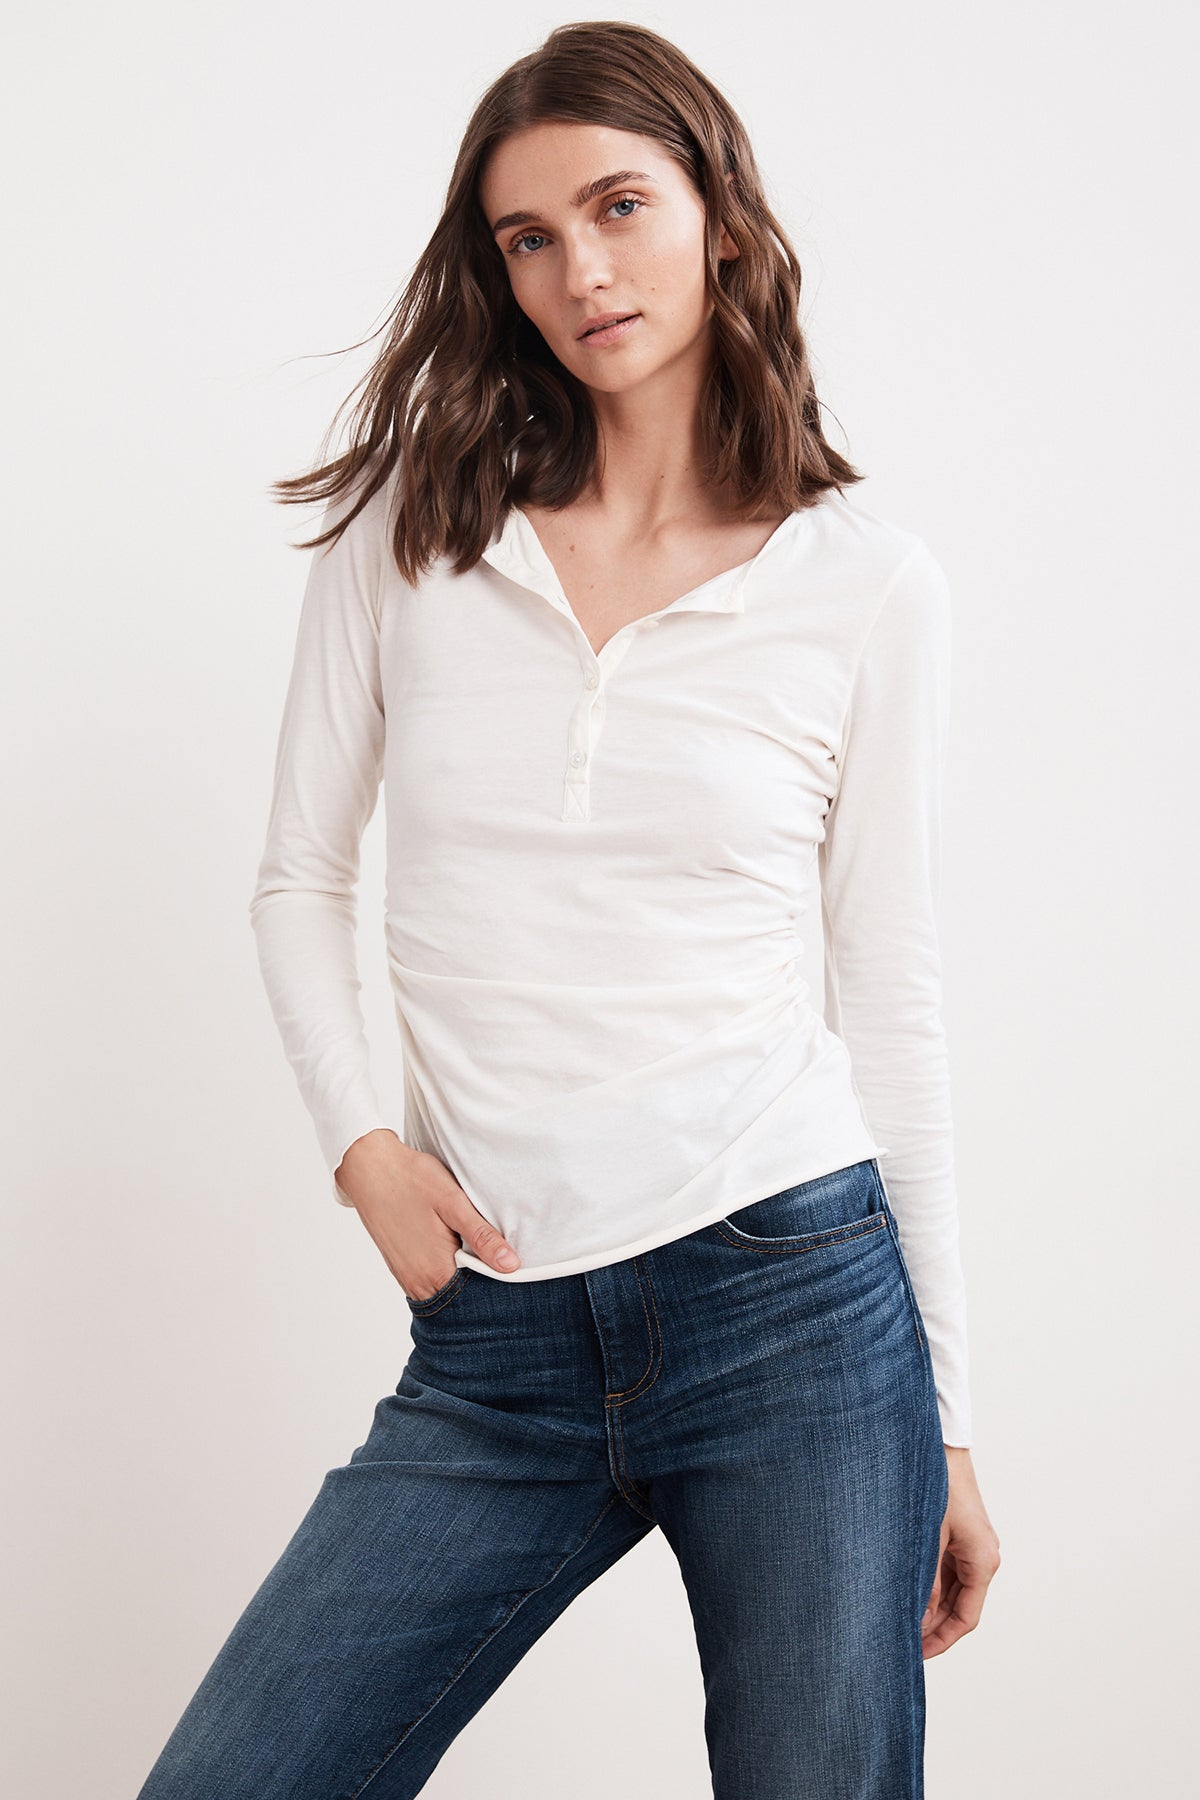 FAN GAUZY WHISPER LONG SLEEVE HENLEY TEE